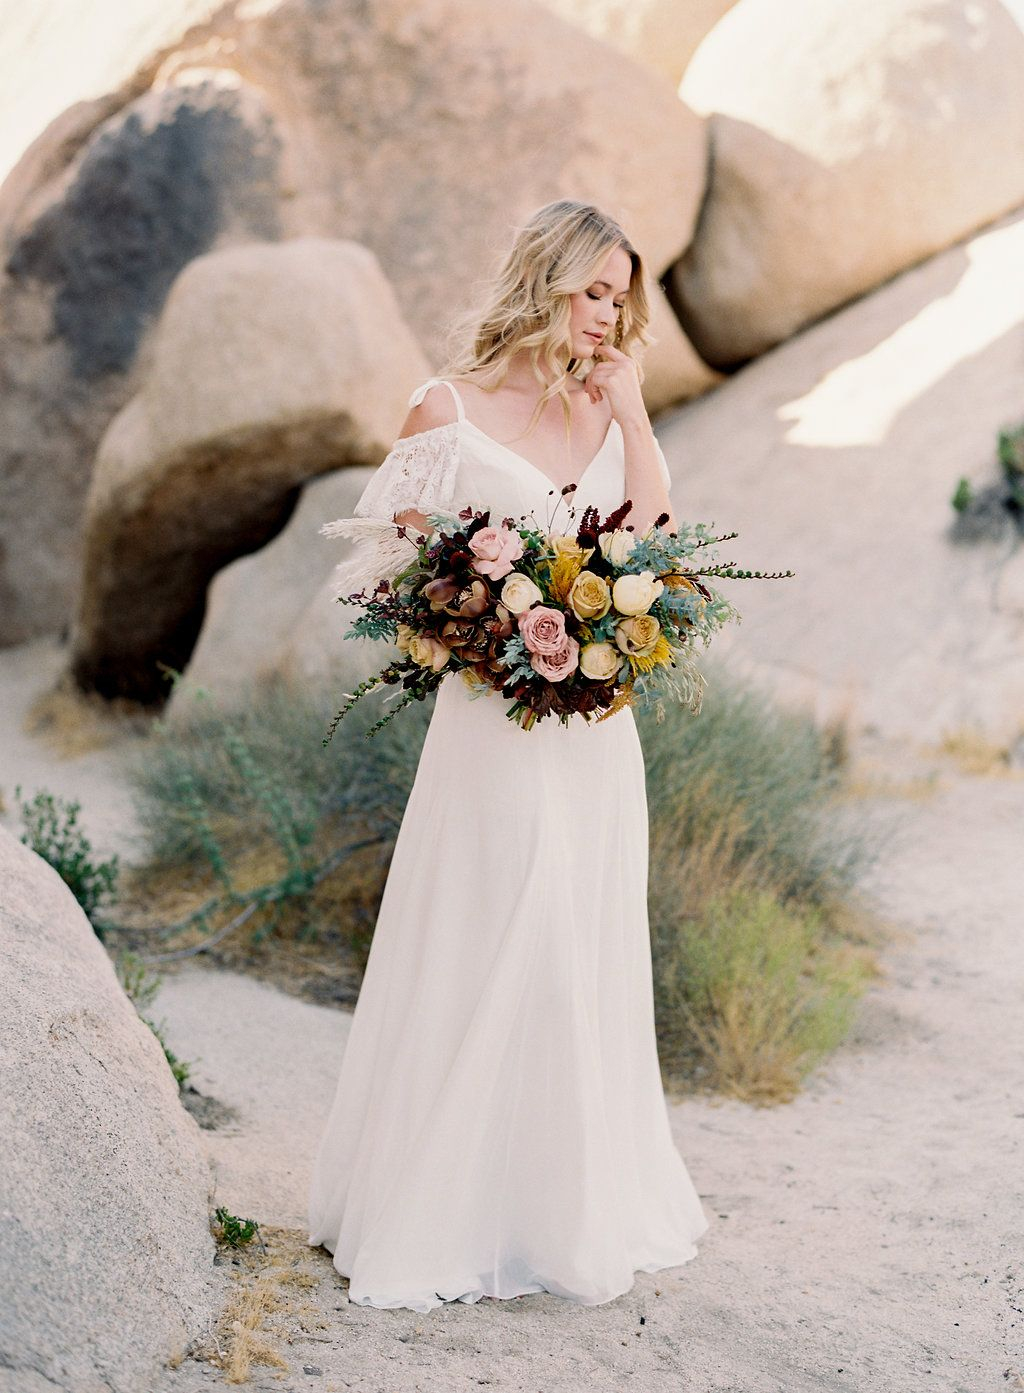 Bridal gowns with a wild and wonderful sense of wedding style by